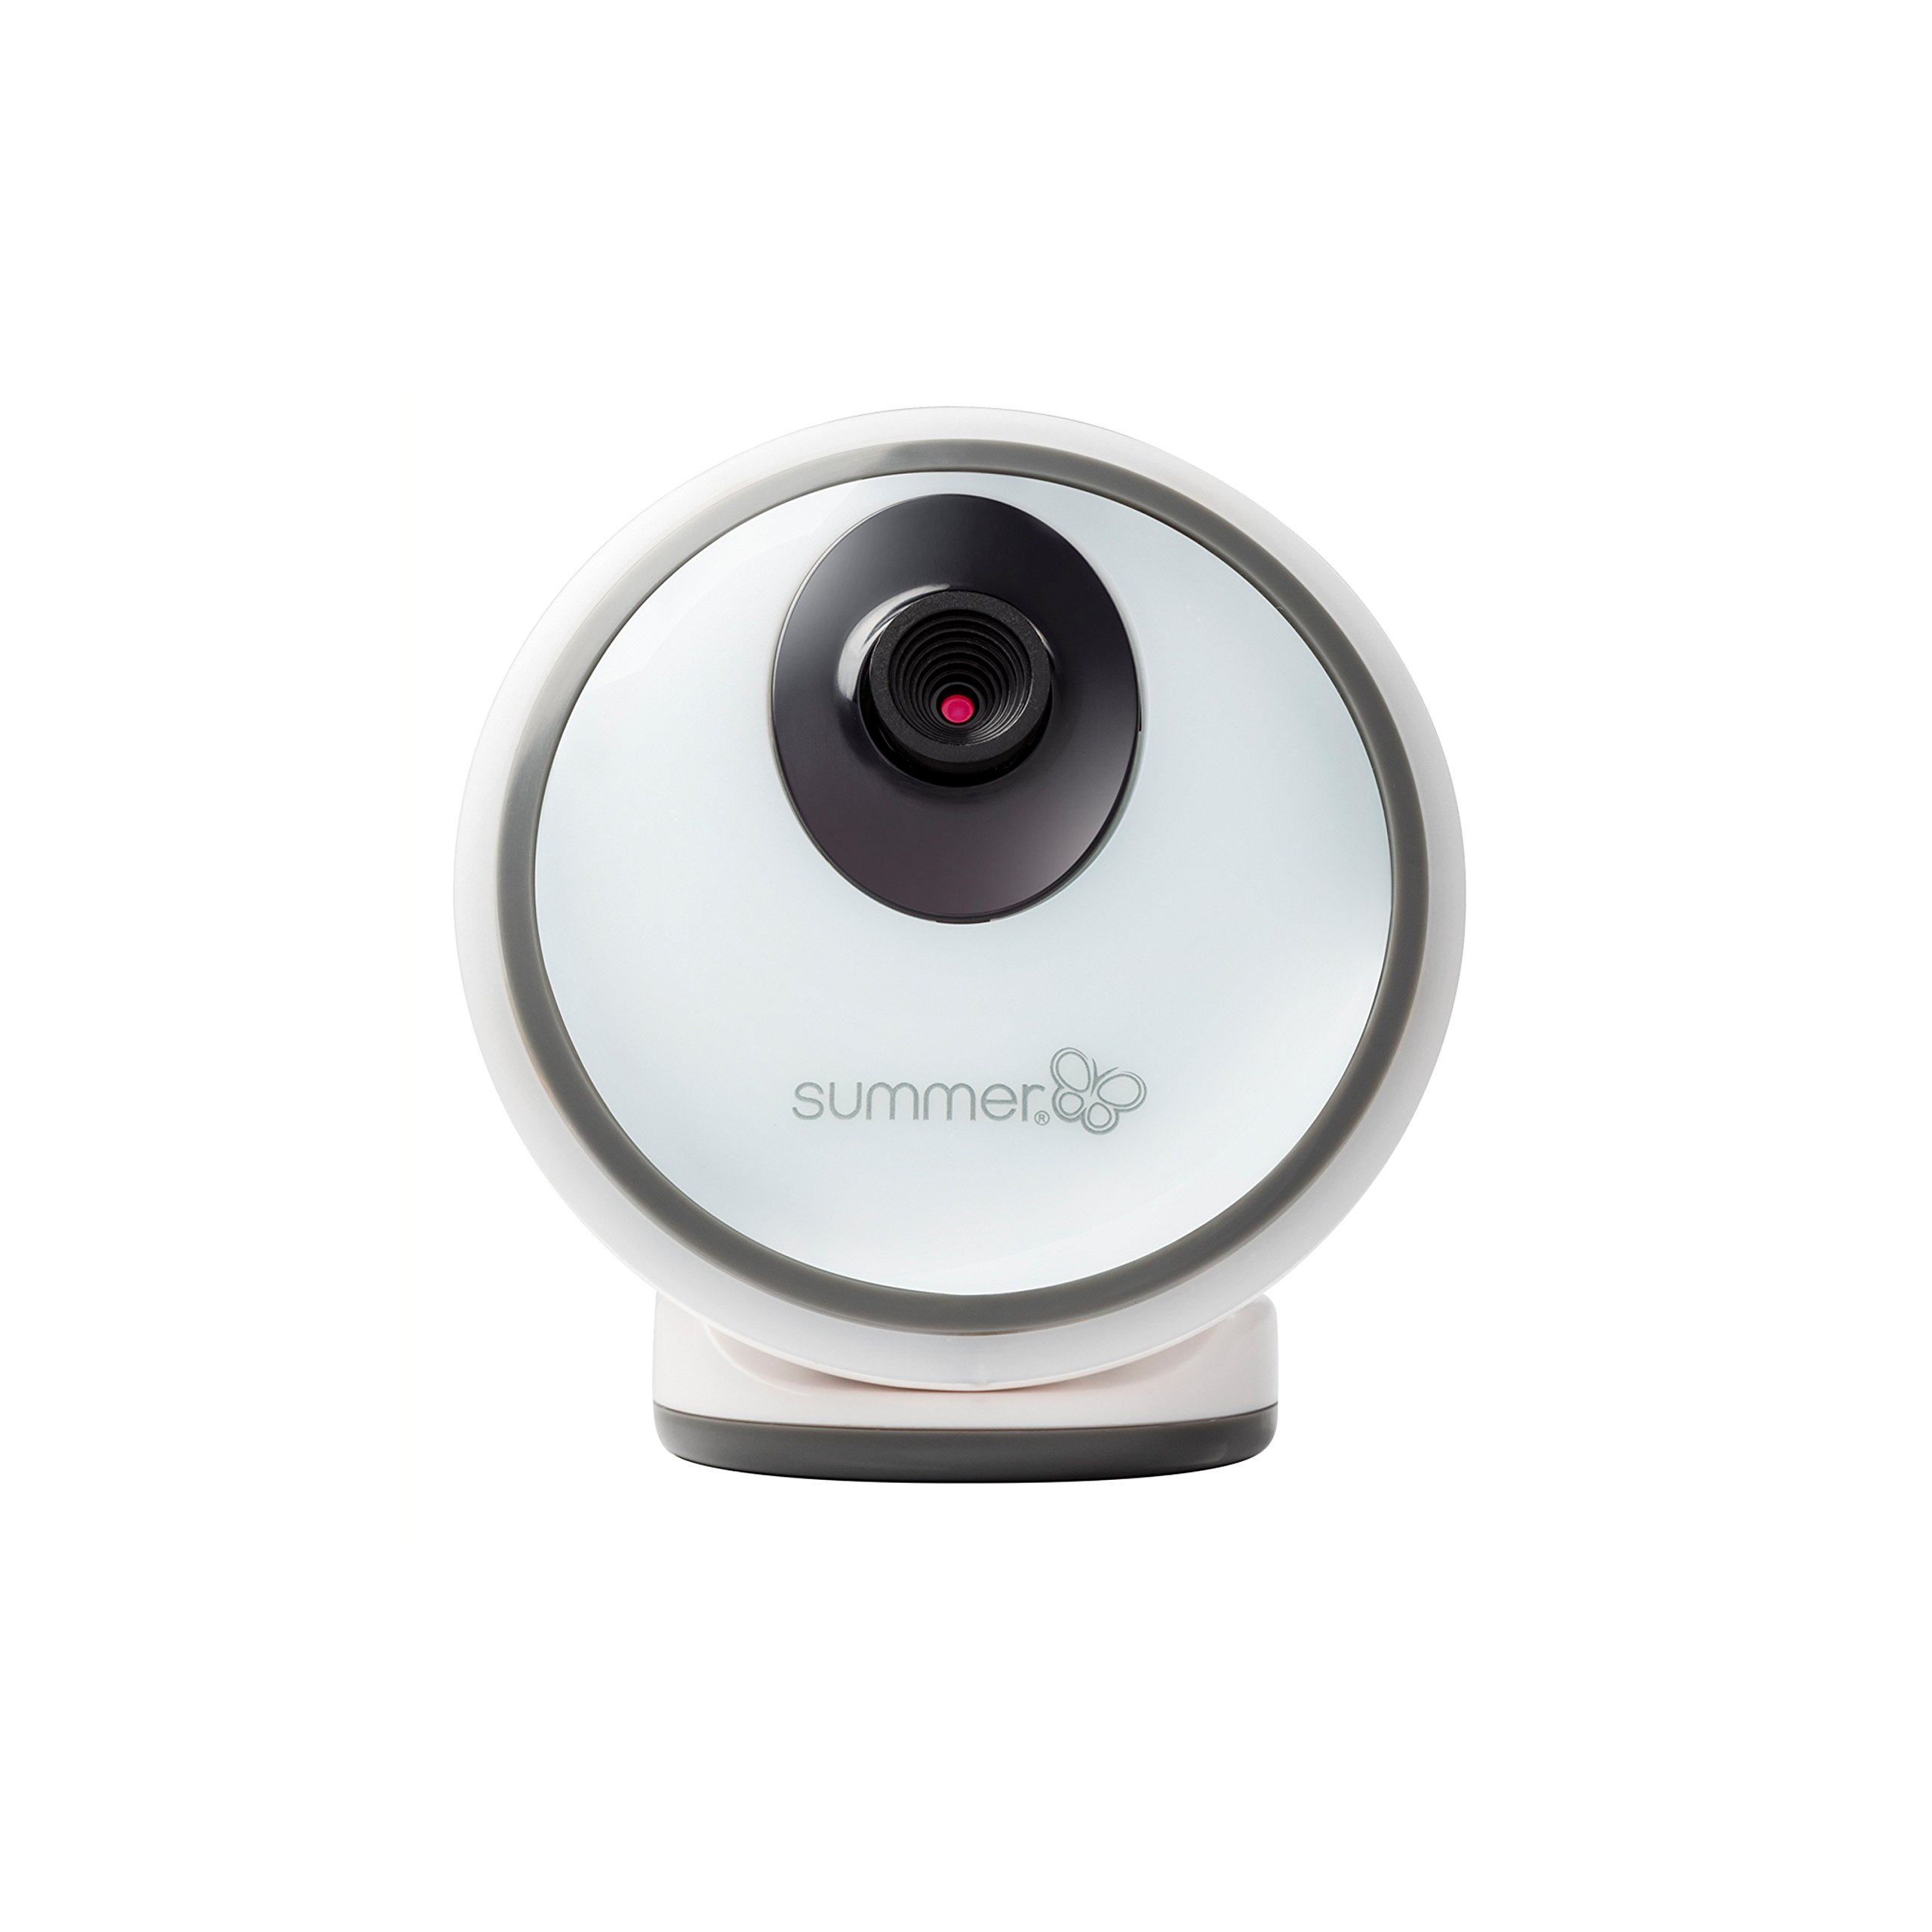 Summer Extra Video Camera, Glimpse Monitor System by Summer Infant